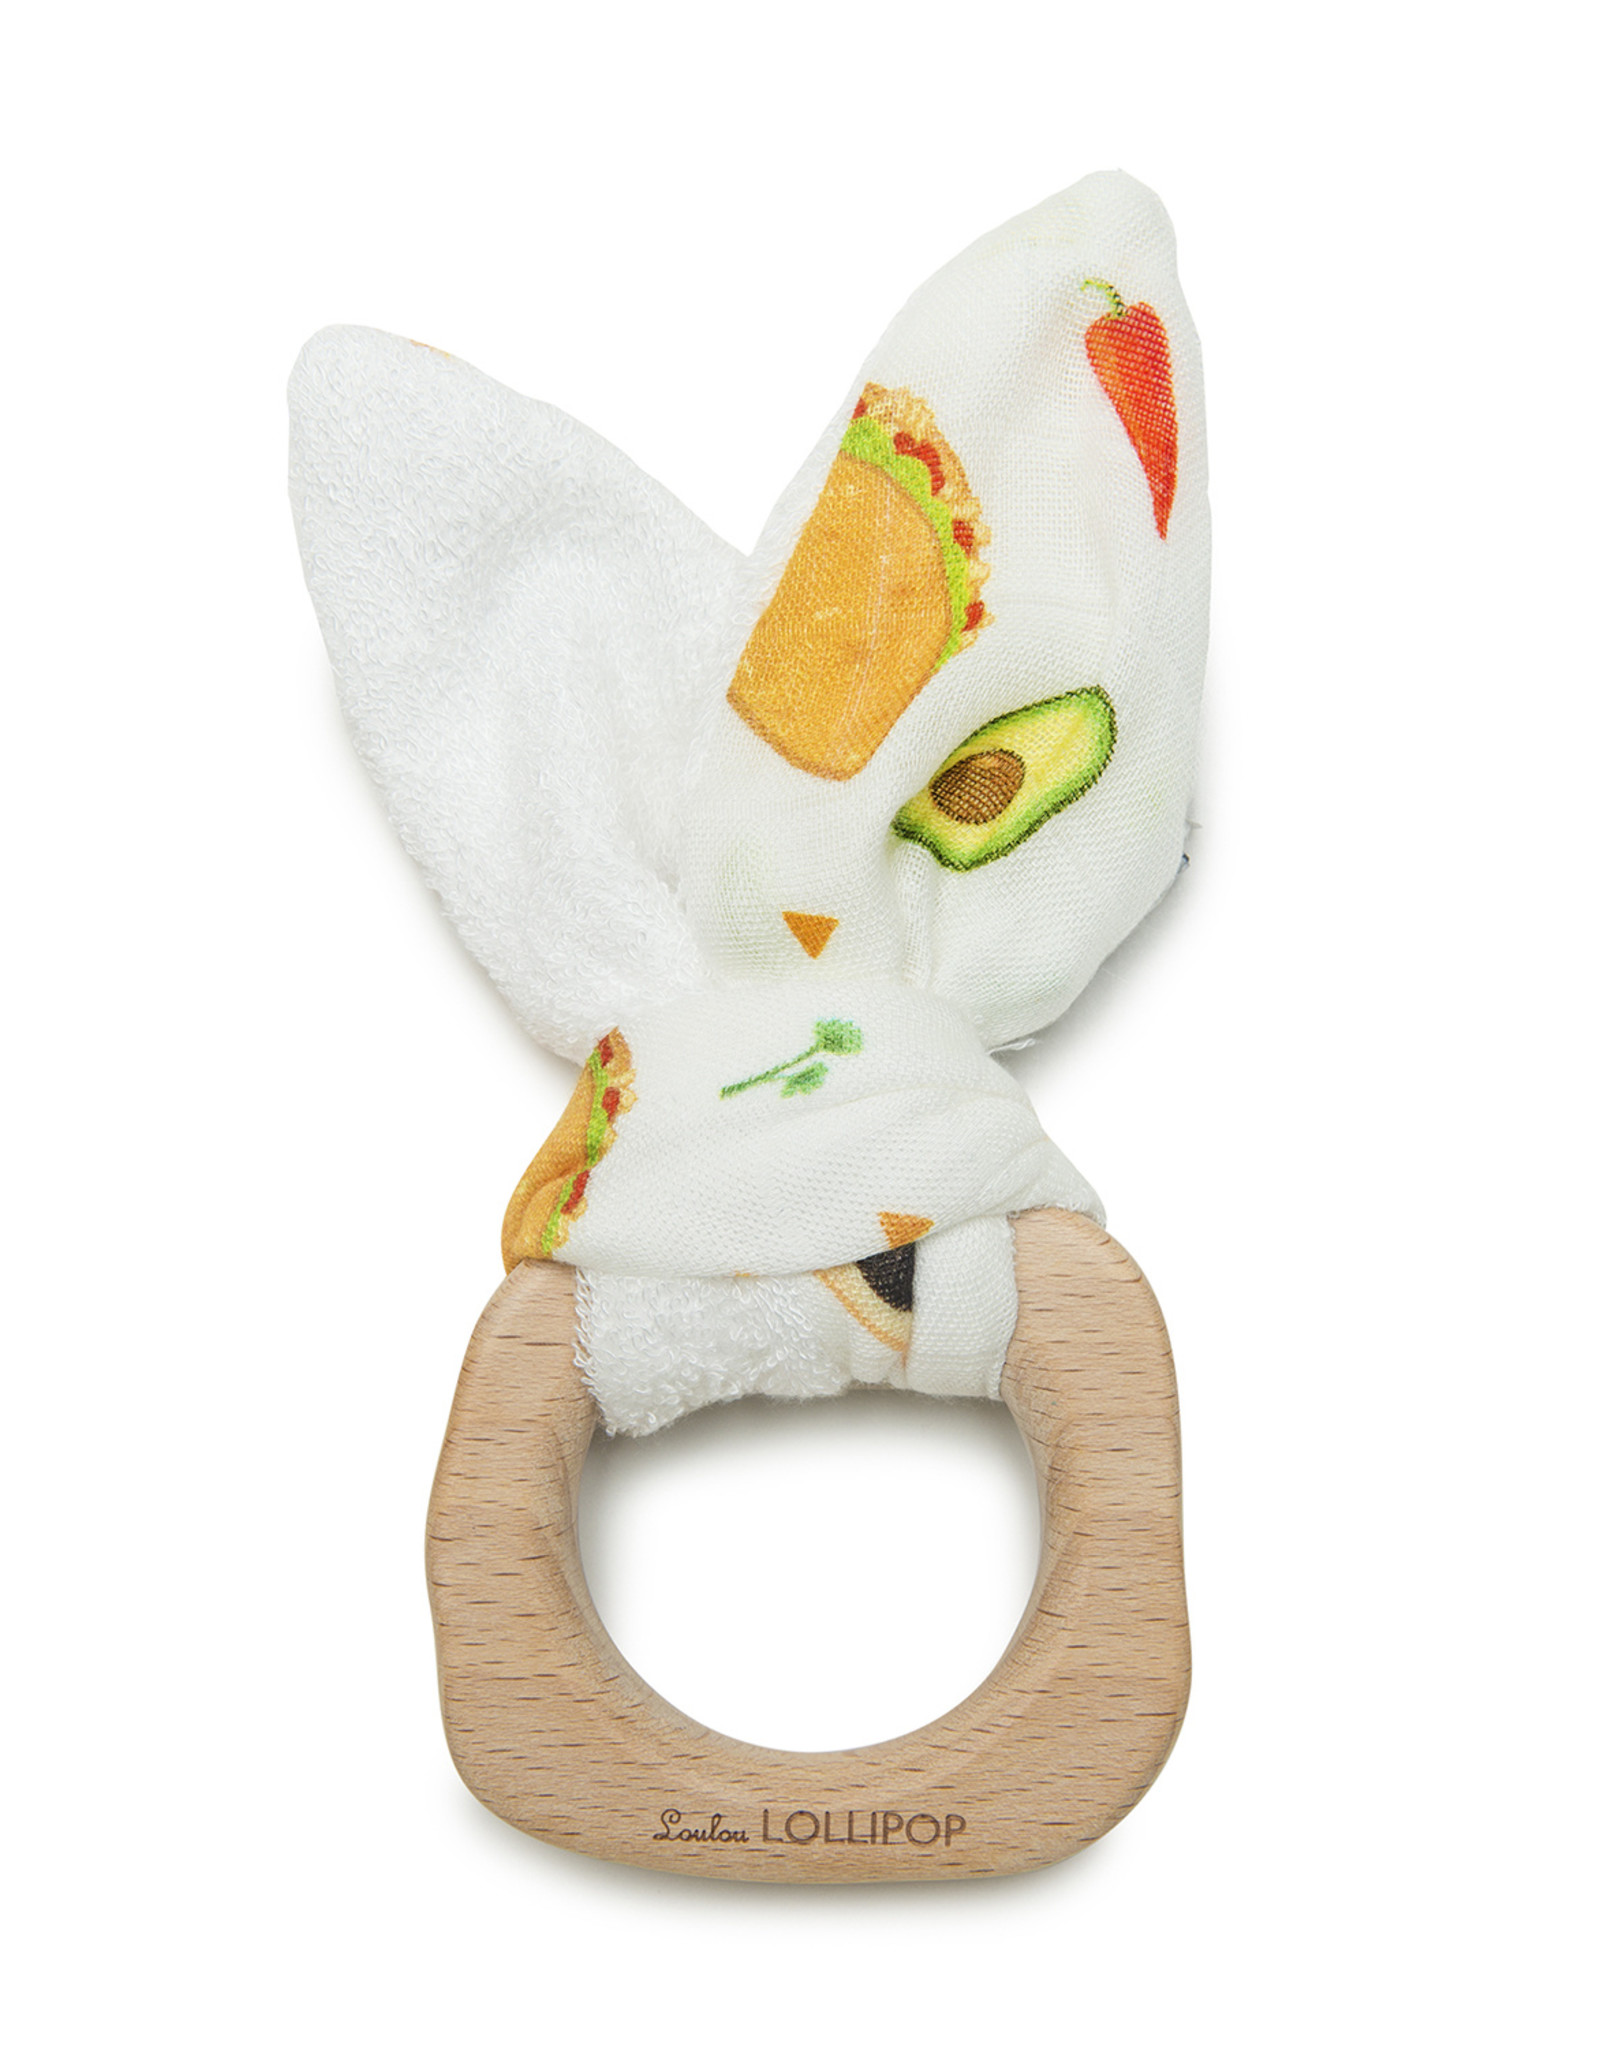 Loulou Lollipop Bunny Ear Teething Ring Tacos